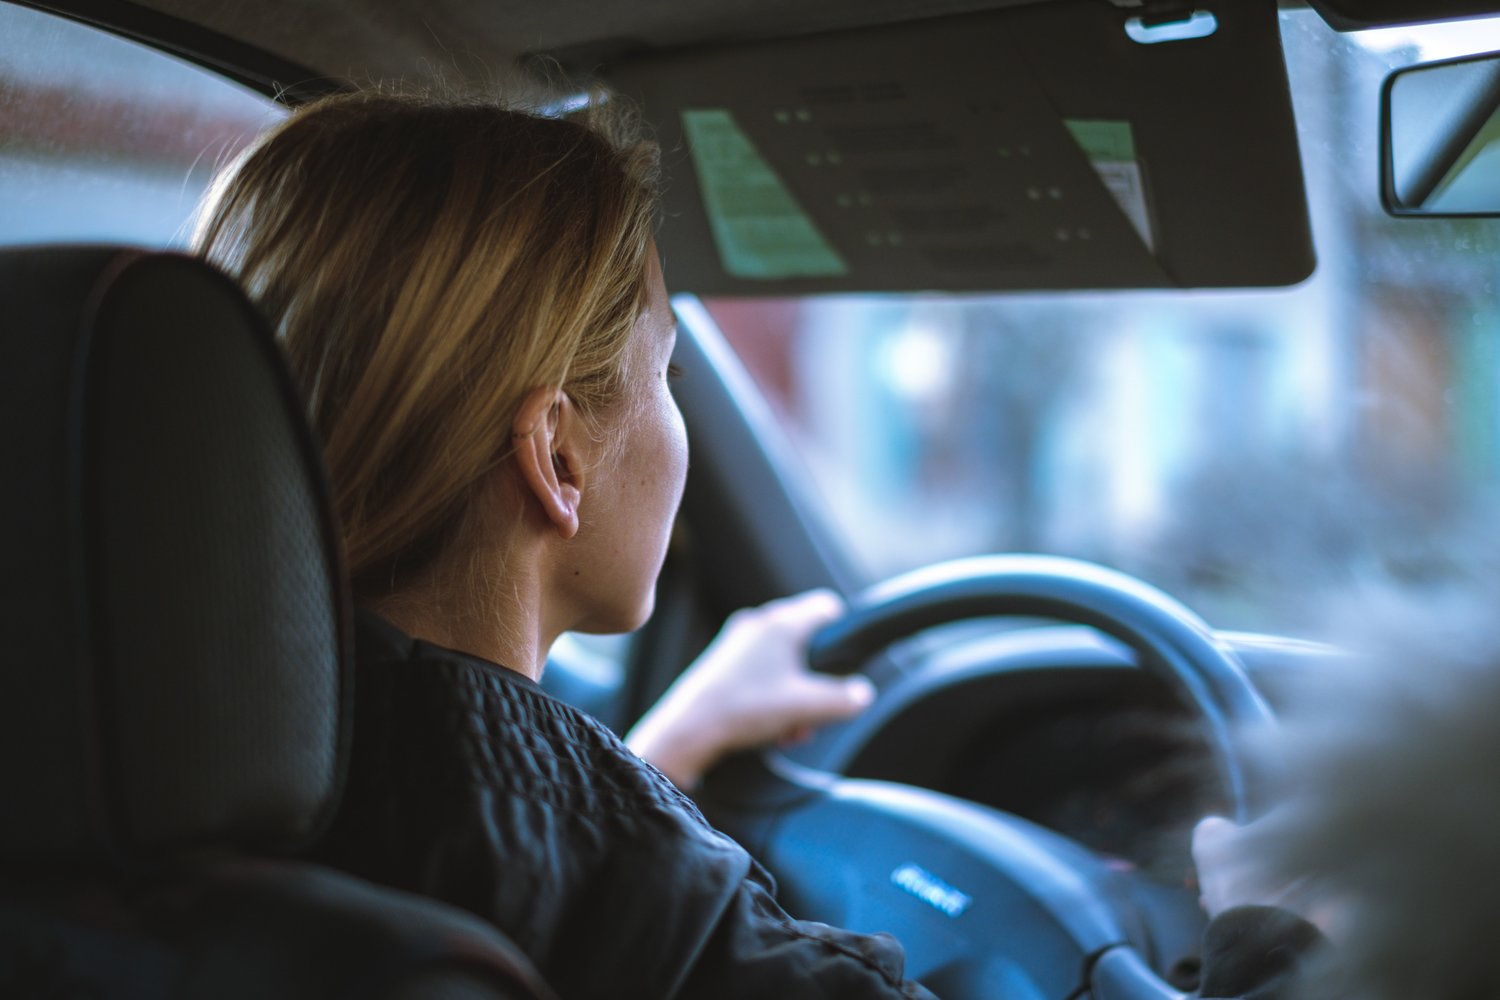 Risky time for teens driving as COVID-19 restrictions ease